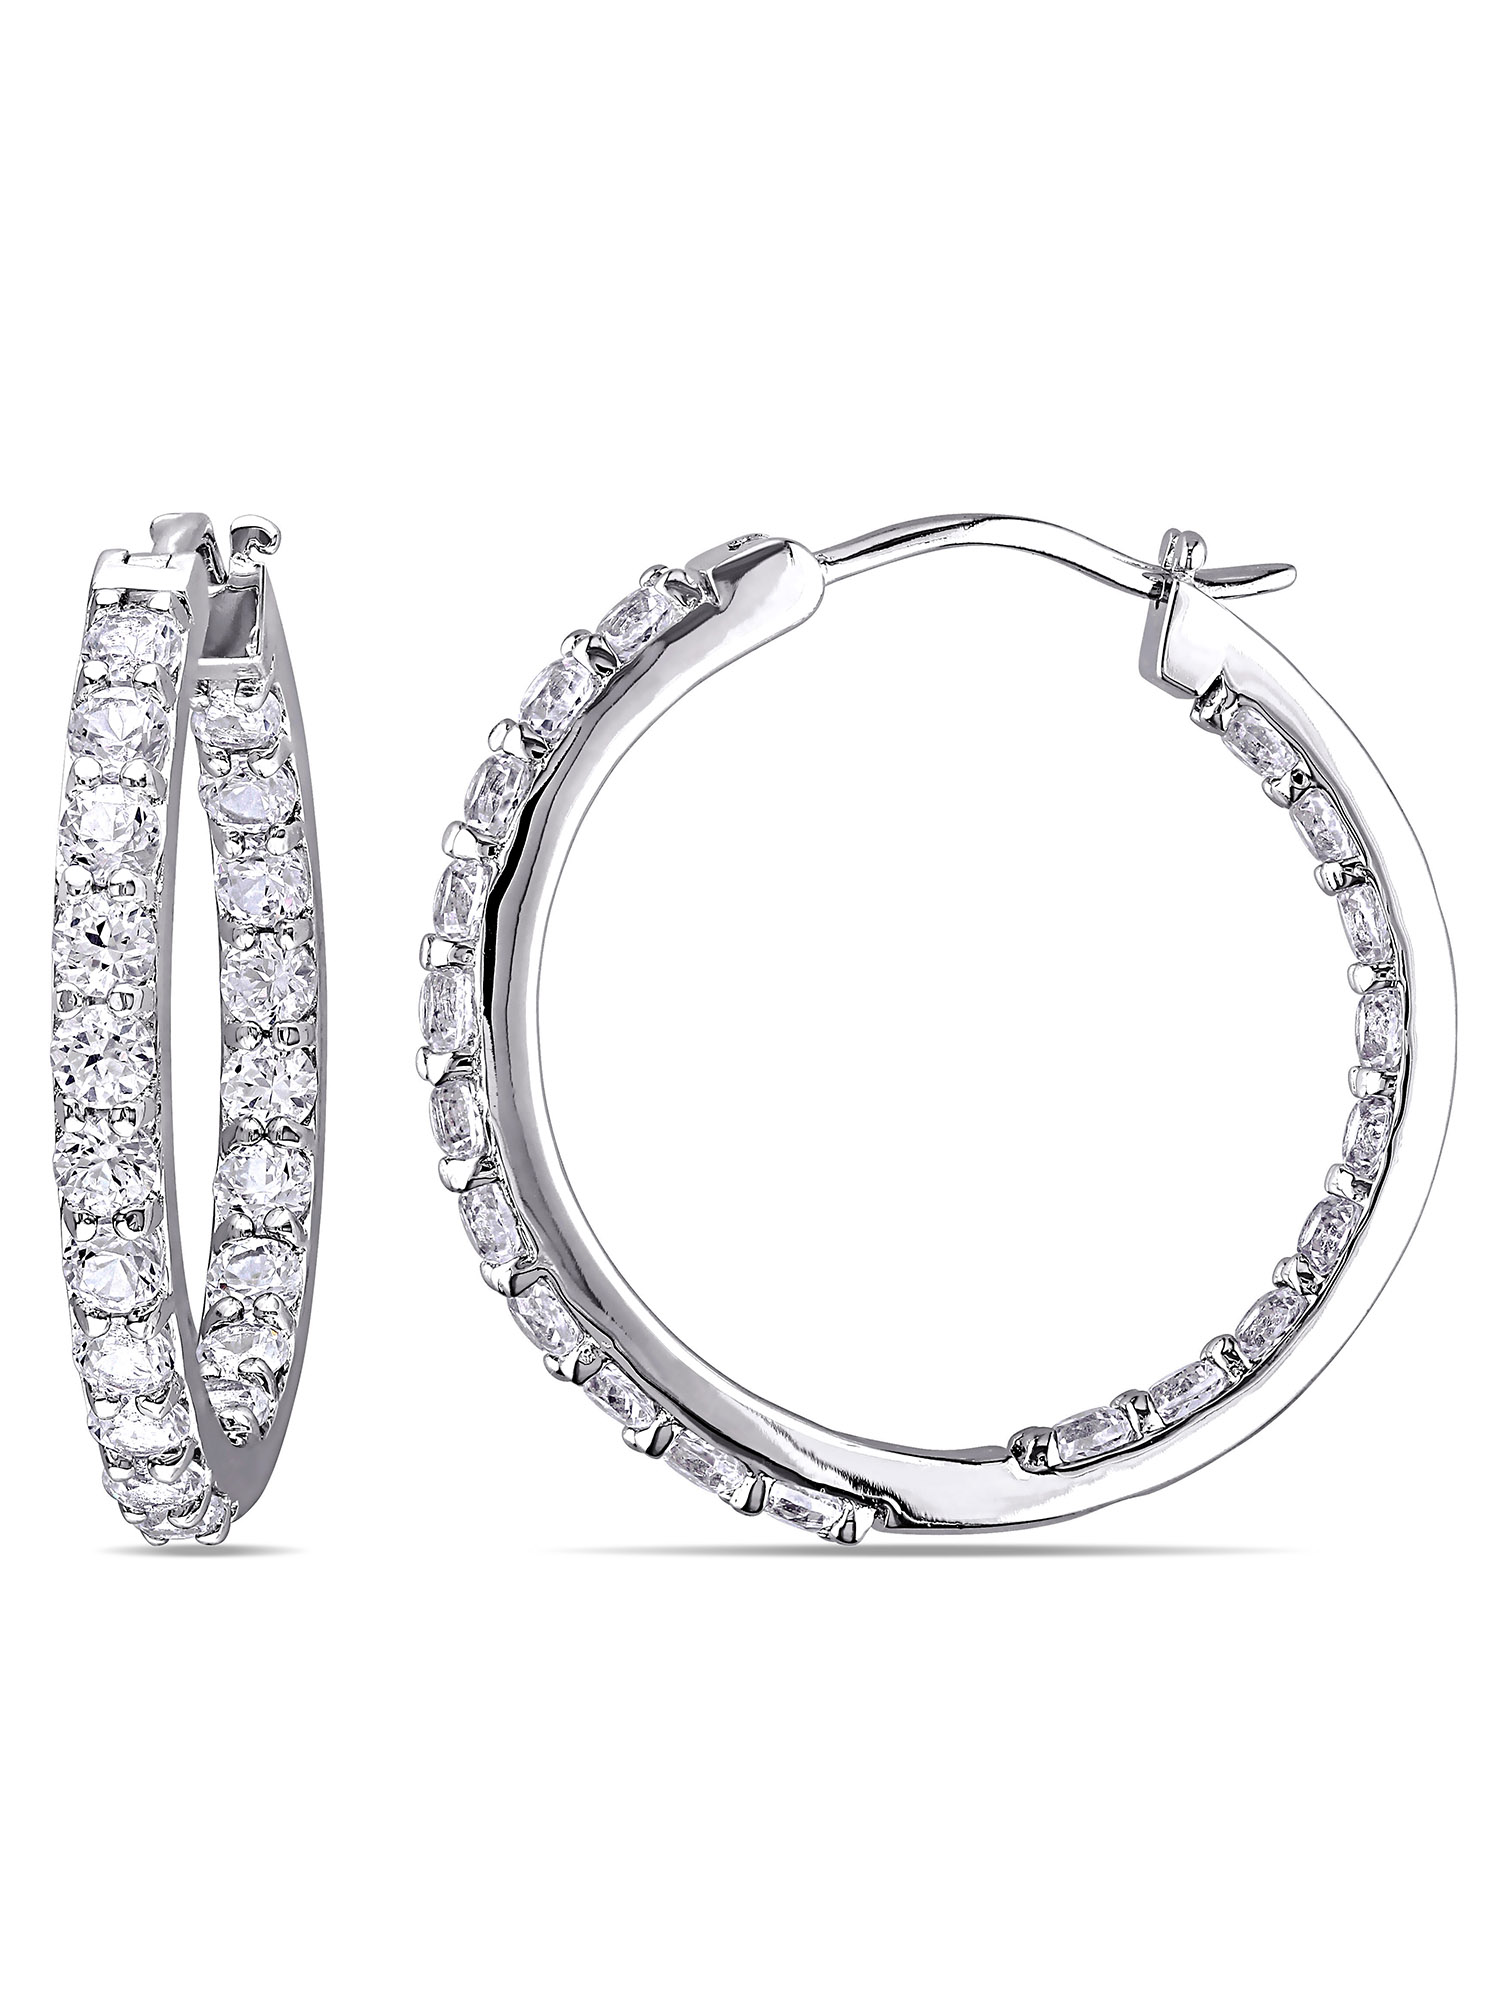 Miabella 3-1/2 Carat T.G.W. Created White Sapphire Sterling Silver Hoop Earrings